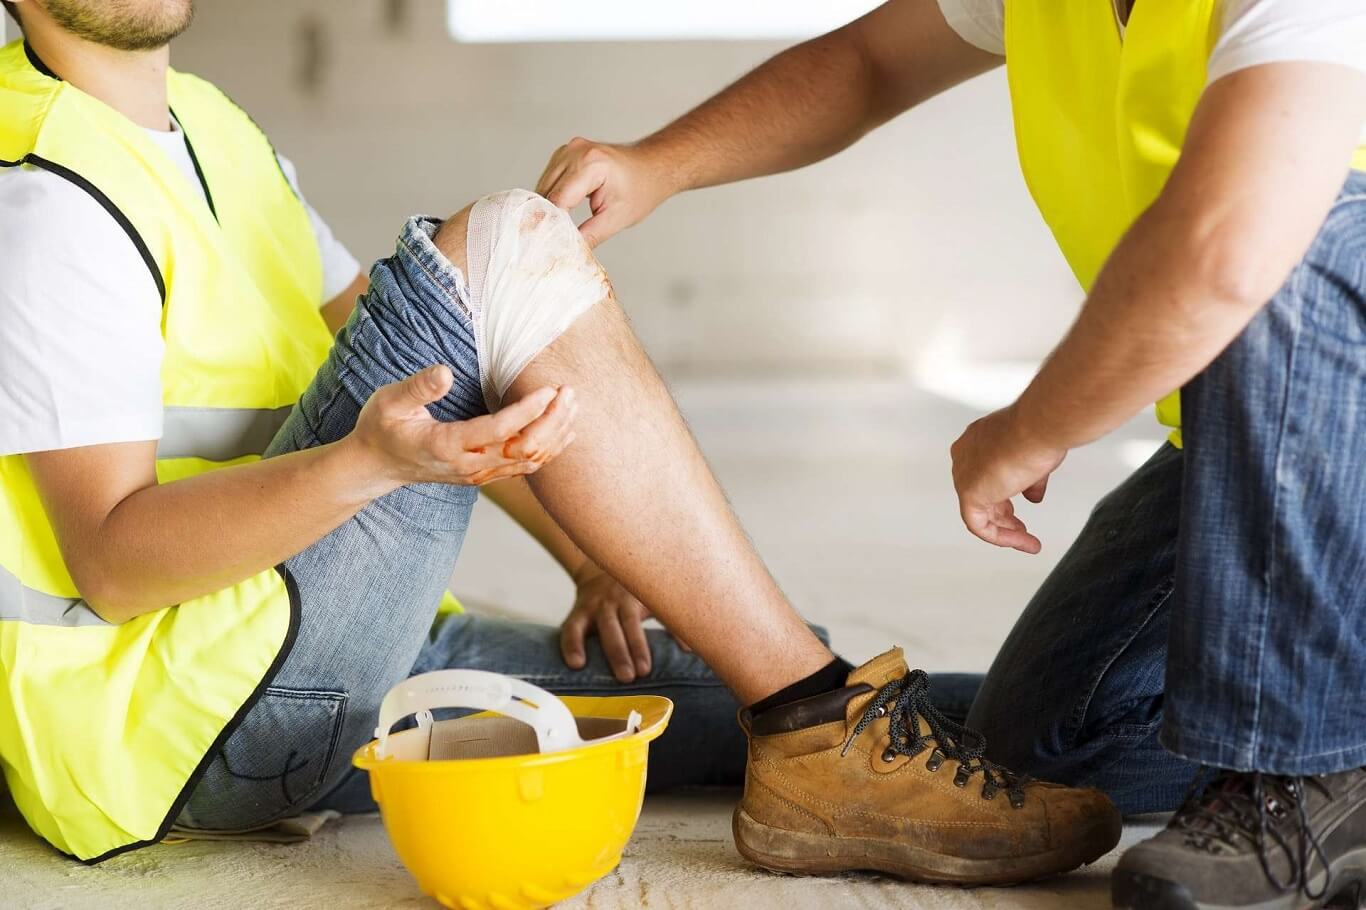 What is the purpose of workers compensation